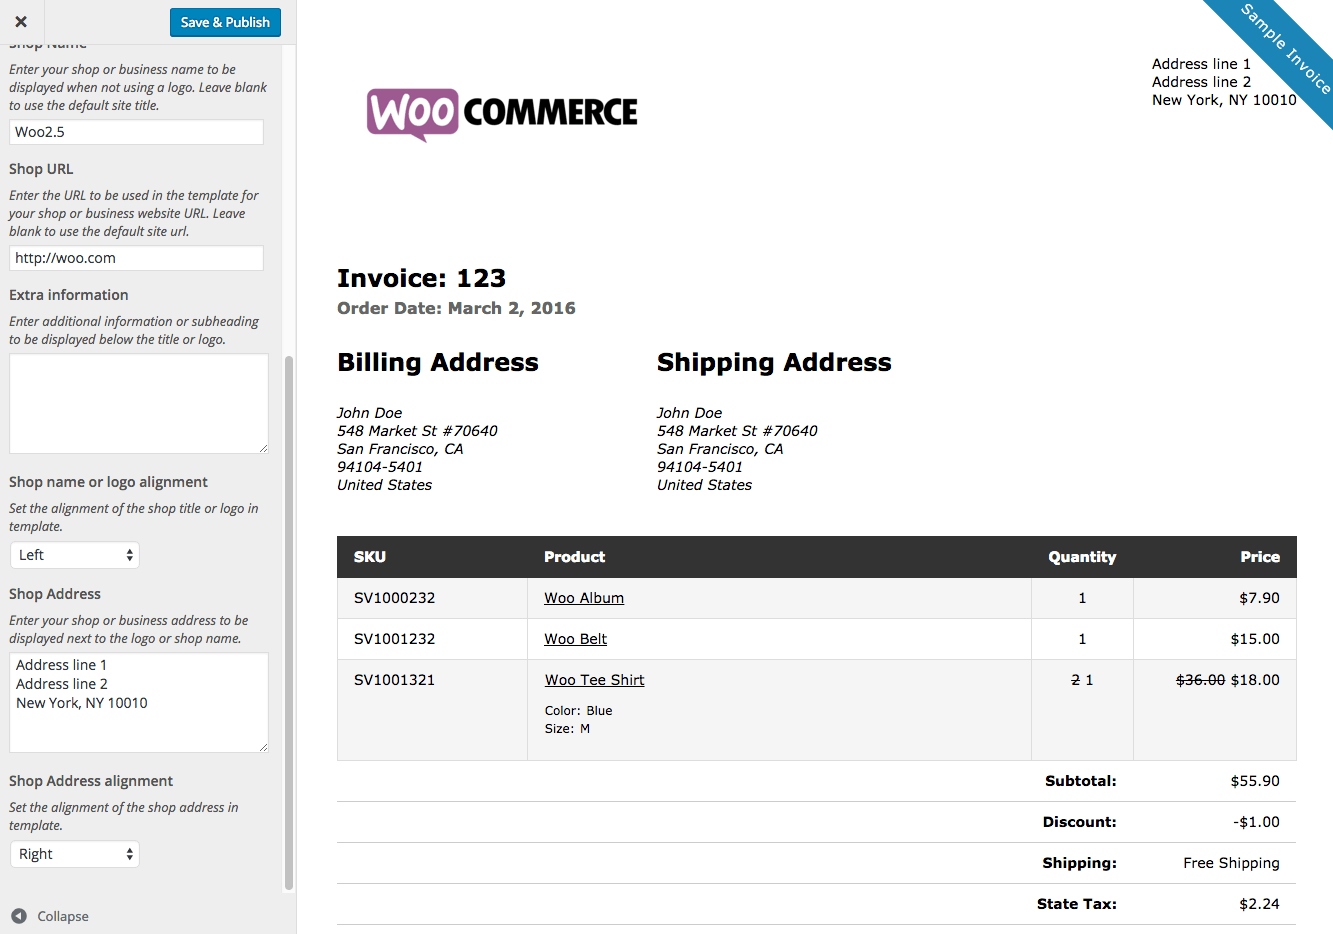 Usdgus  Scenic Woocommerce Print Invoices Amp Packing Lists  Woocommerce Docs With Heavenly Woocommerce Print Invoices  Packing Lists Customizer With Awesome Receipt For Money Received Also Receipt For Money Paid In Addition Best Receipt Scanner Software And Receipt For Sugar Cookies As Well As Charitable Donation Receipts Additionally Receipt Slip From Docswoocommercecom With Usdgus  Heavenly Woocommerce Print Invoices Amp Packing Lists  Woocommerce Docs With Awesome Woocommerce Print Invoices  Packing Lists Customizer And Scenic Receipt For Money Received Also Receipt For Money Paid In Addition Best Receipt Scanner Software From Docswoocommercecom